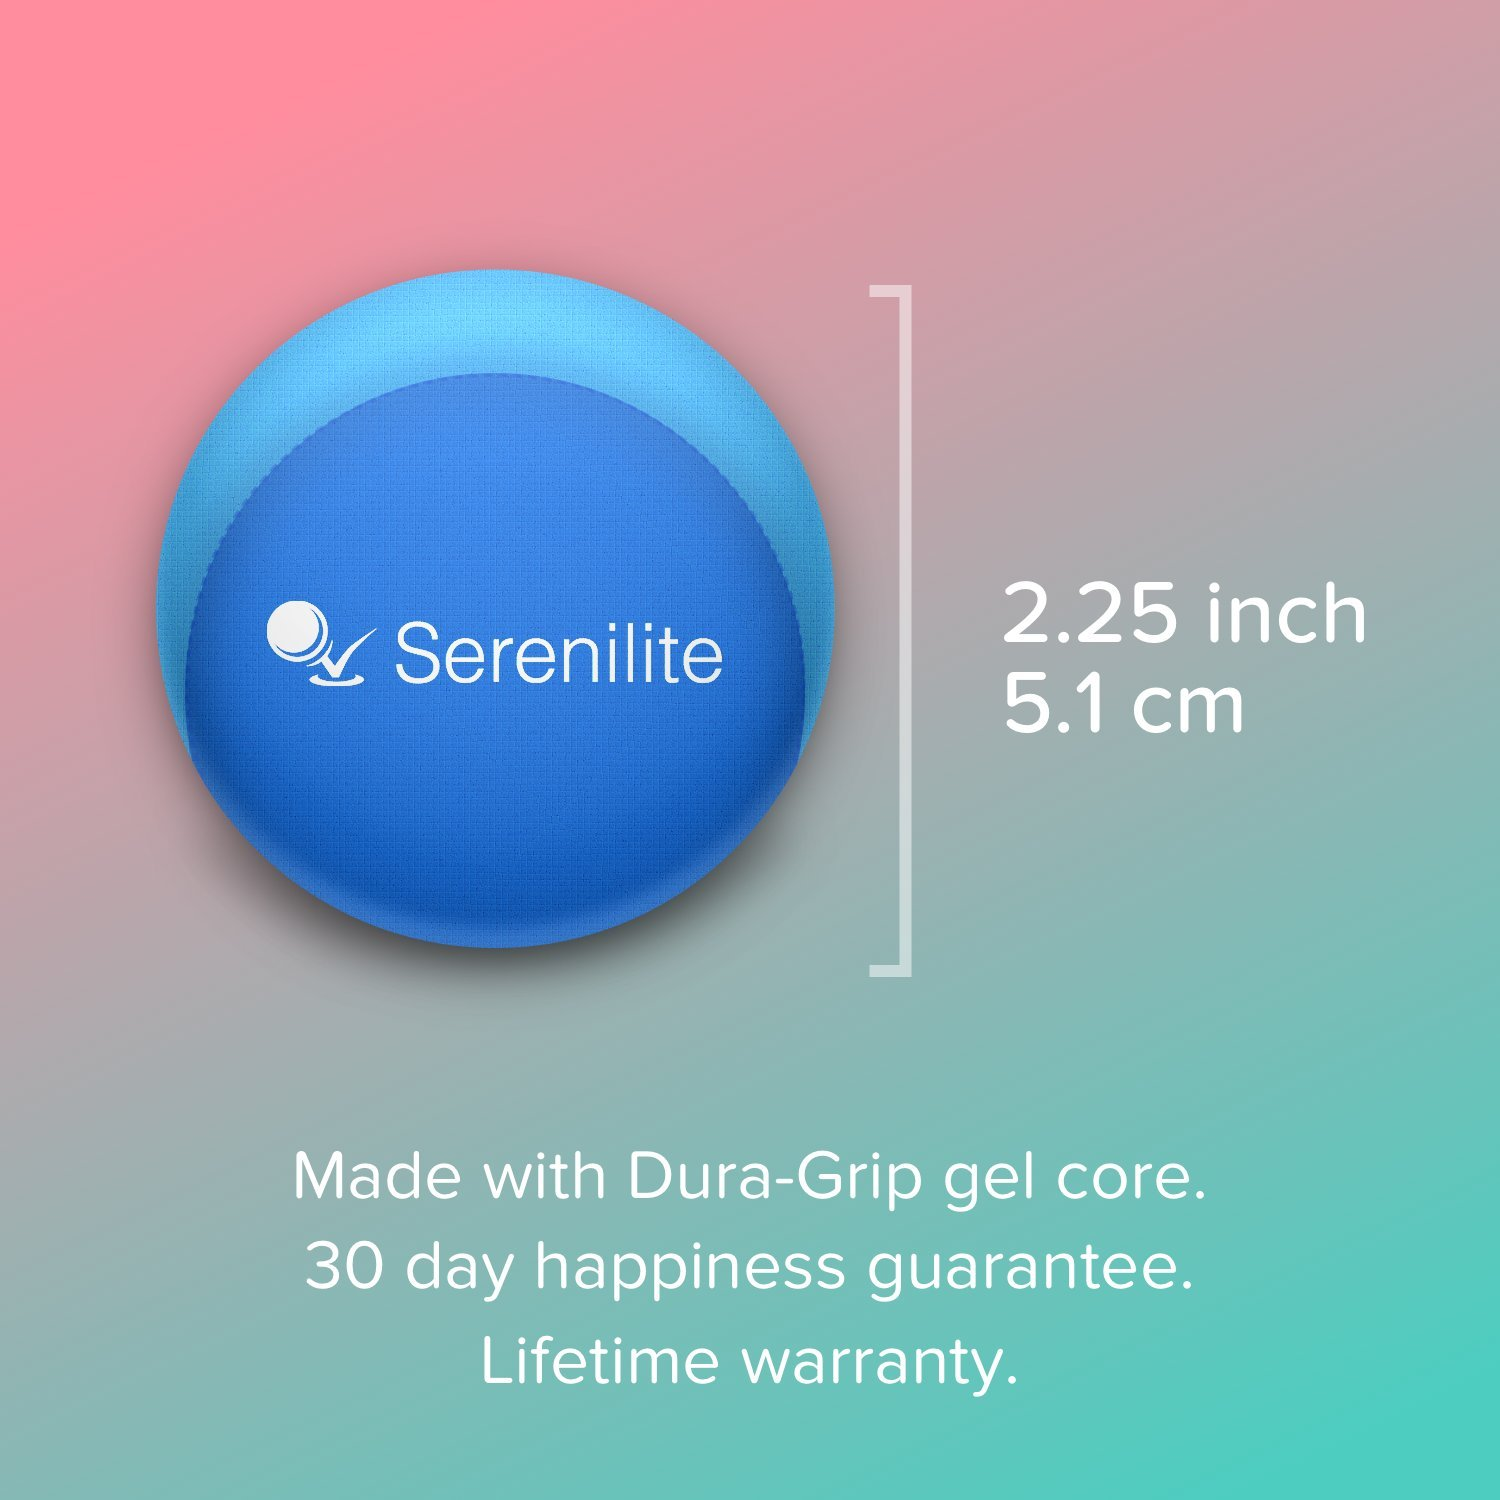 Serenilite Stress Ball & Hand Therapy Gel Squeeze Ball - Great for Hand Exercises and Strengthening - Optimal Stress Relief - Dual Color (Ocean Breeze) by Serenilite (Image #7)